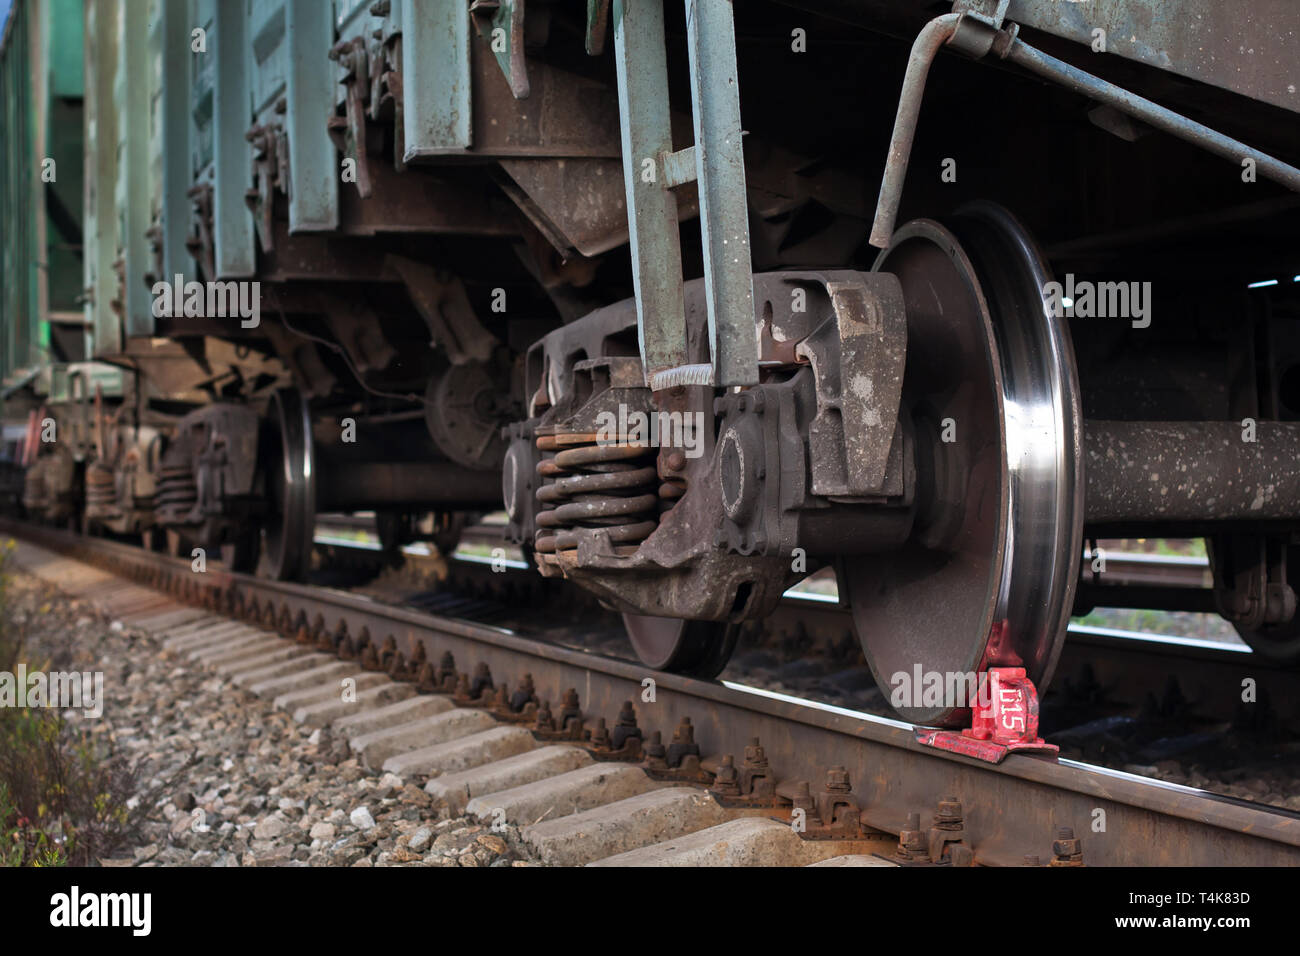 red railway brake Shoe stops the train on the rails - Stock Image